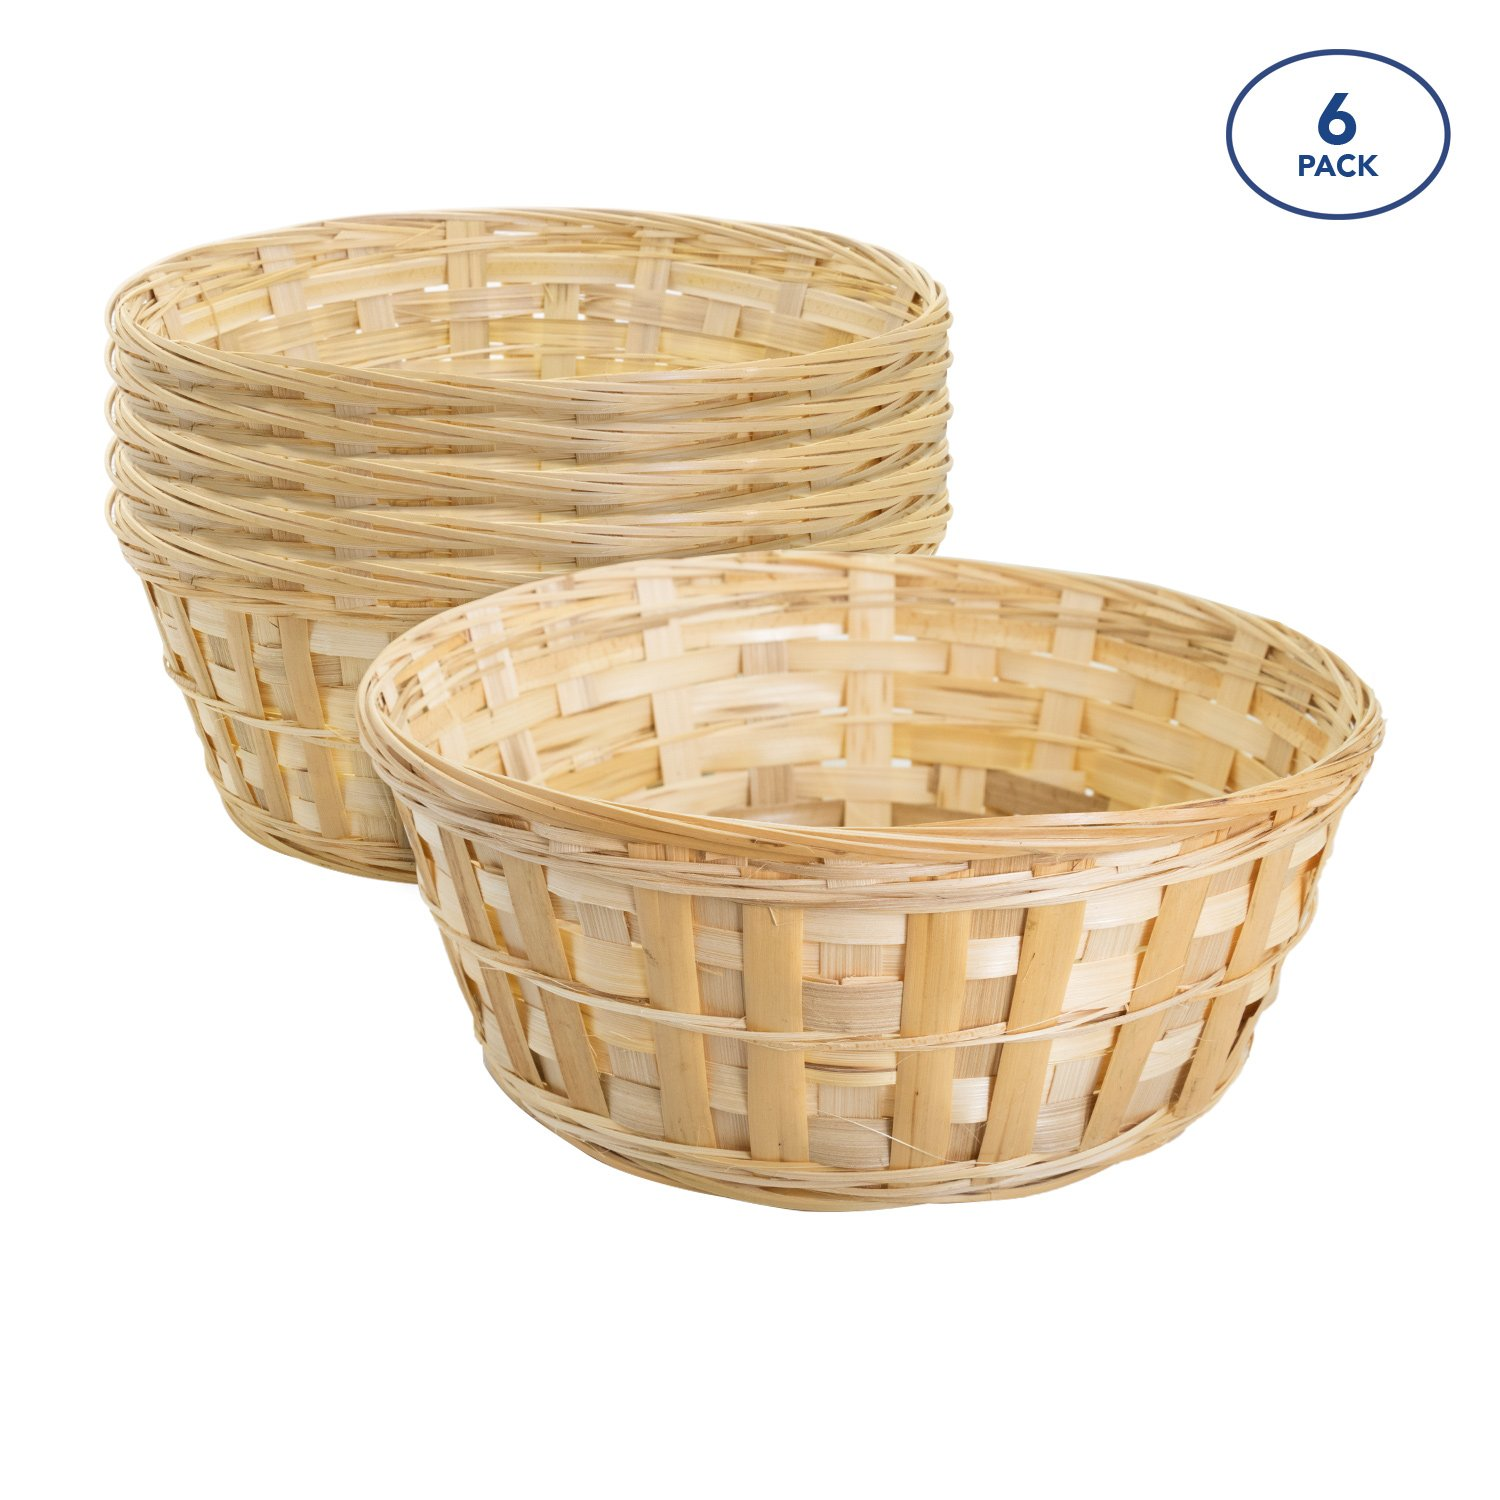 Royal Imports 10'' Round Natural Bamboo Handwoven Bread Basket 4''x10'' Braided Rim, Pack of 6